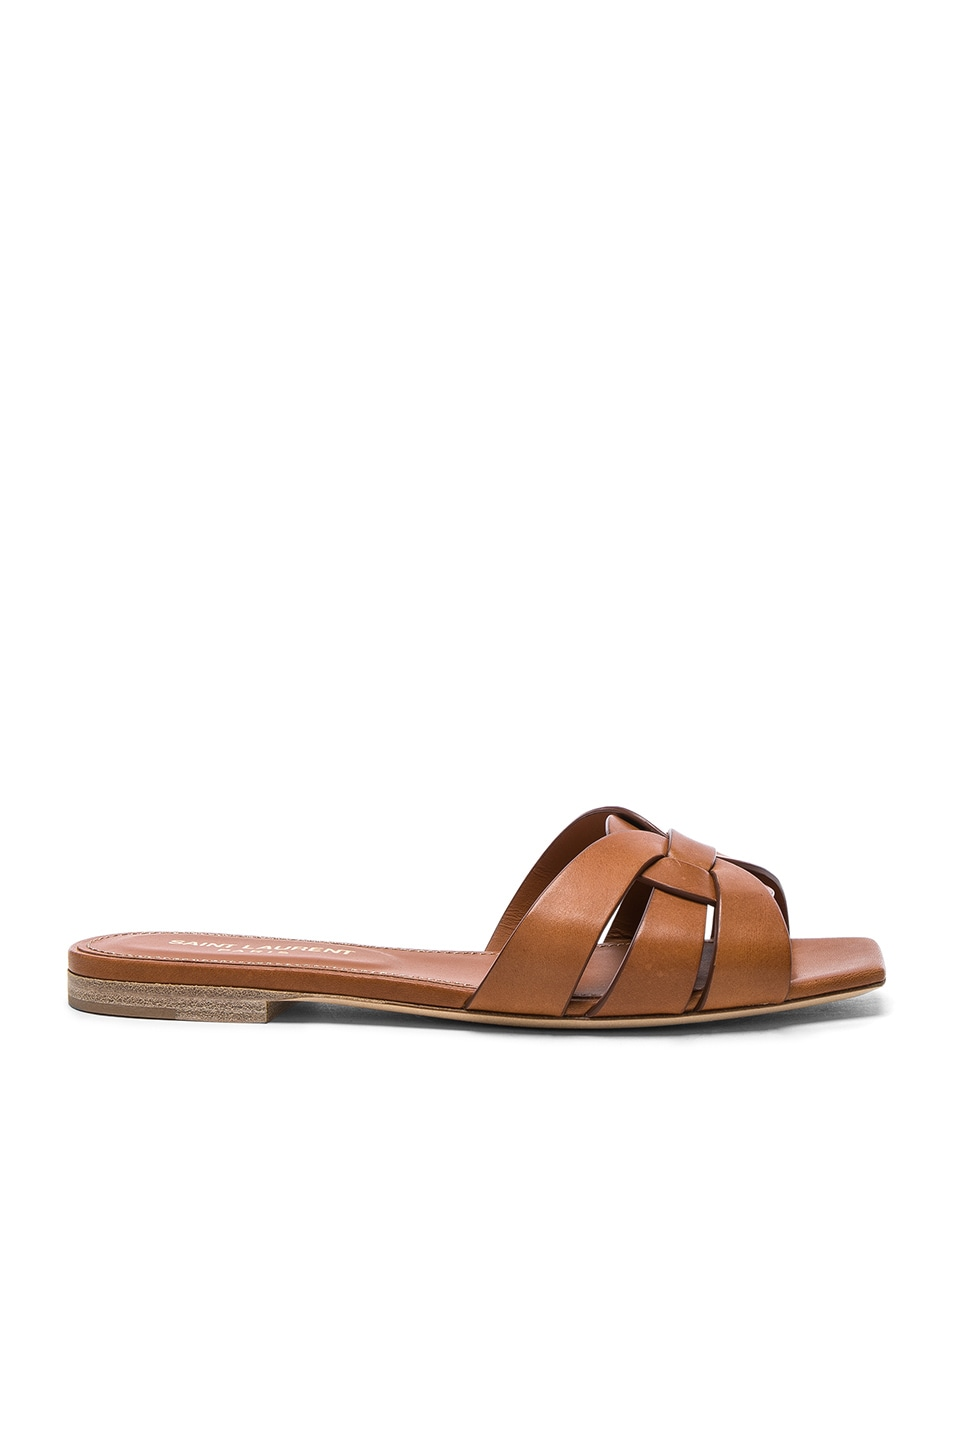 Image 1 of Saint Laurent Nu Pieds Leather Slides in Amber